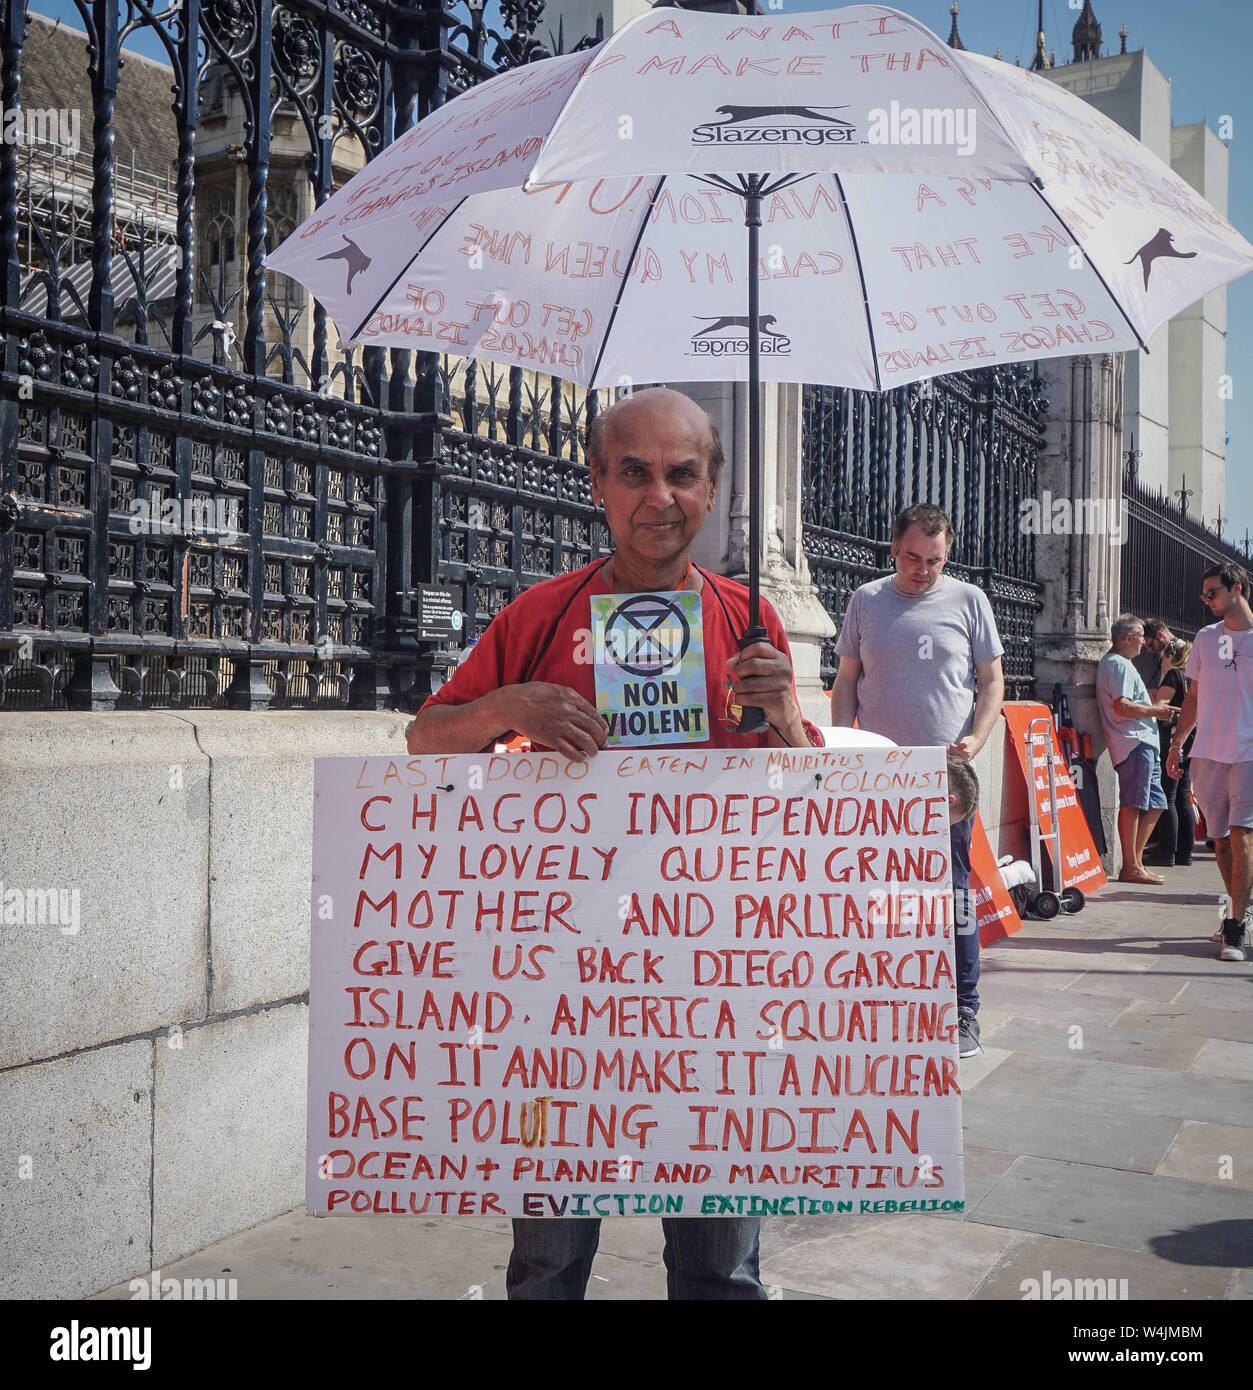 London, UK. 23rd July, 2019. A Brexit supporter demonstrates opposite the Houses of Parliament. Credit: Yiannis Alexopoulos/SOPA Images/ZUMA Wire/Alamy Live News Stock Photo